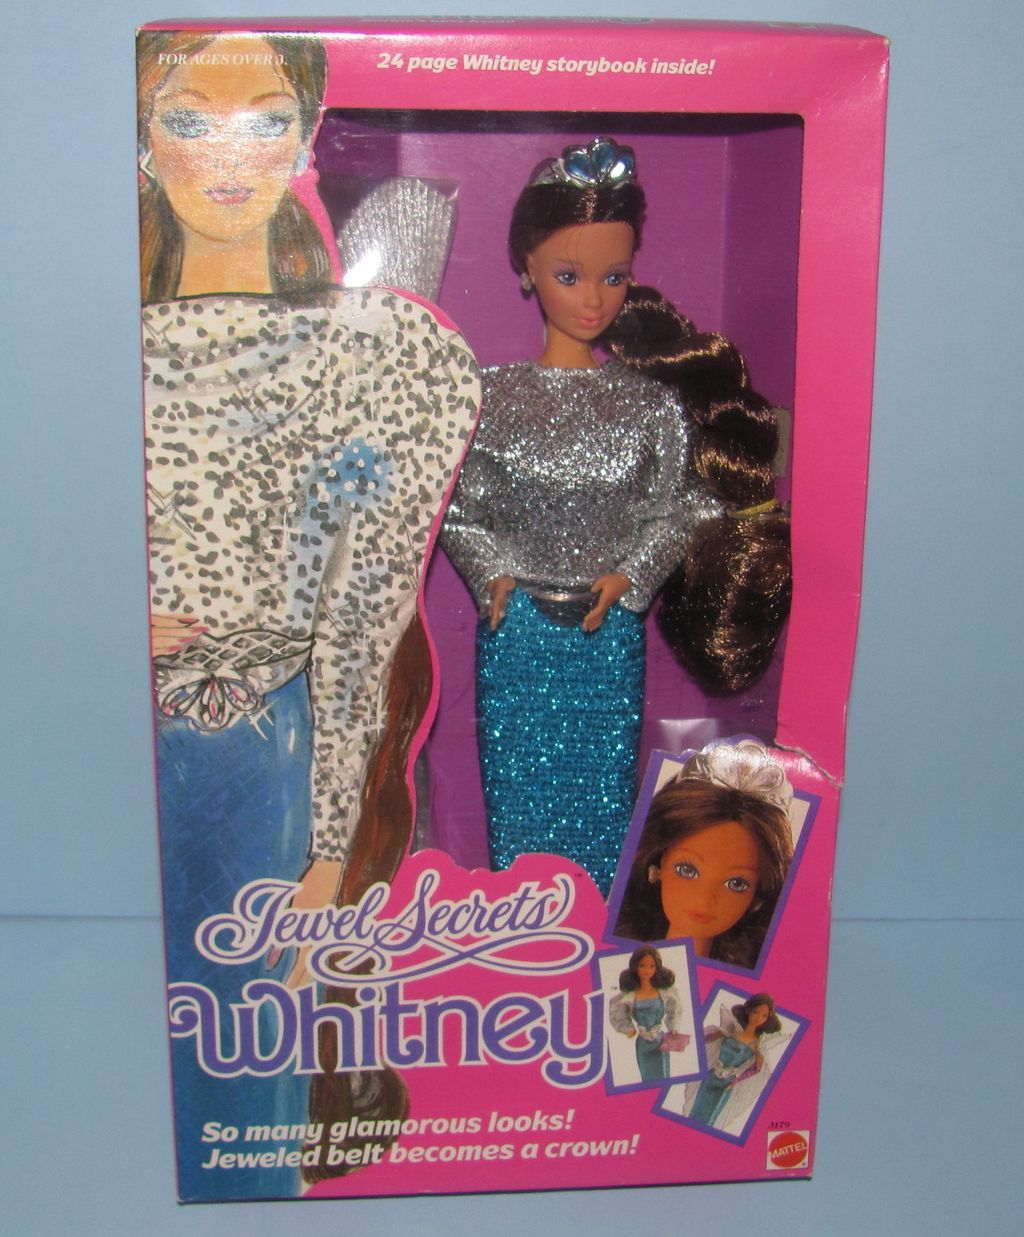 i saved my money for 2 months to buy this doll. it was  $18.00 when i was in elementary school